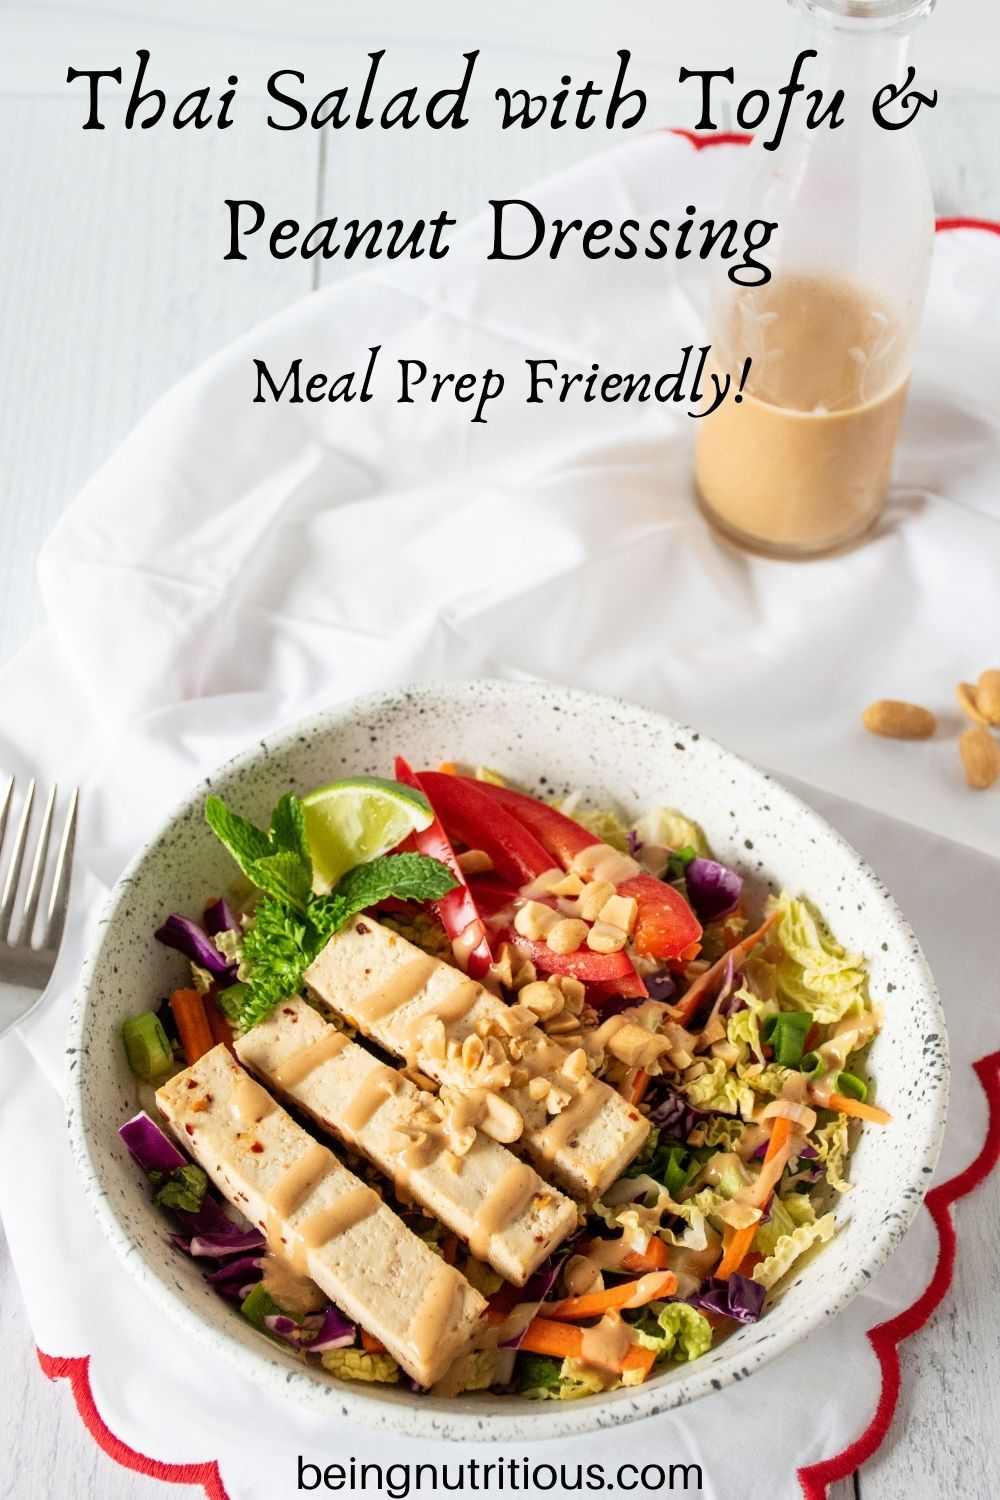 Bowl of Thai salad. Text overlay: Thai Salad with Tofu and Peanut Dressing; Meal Prep Friendly.